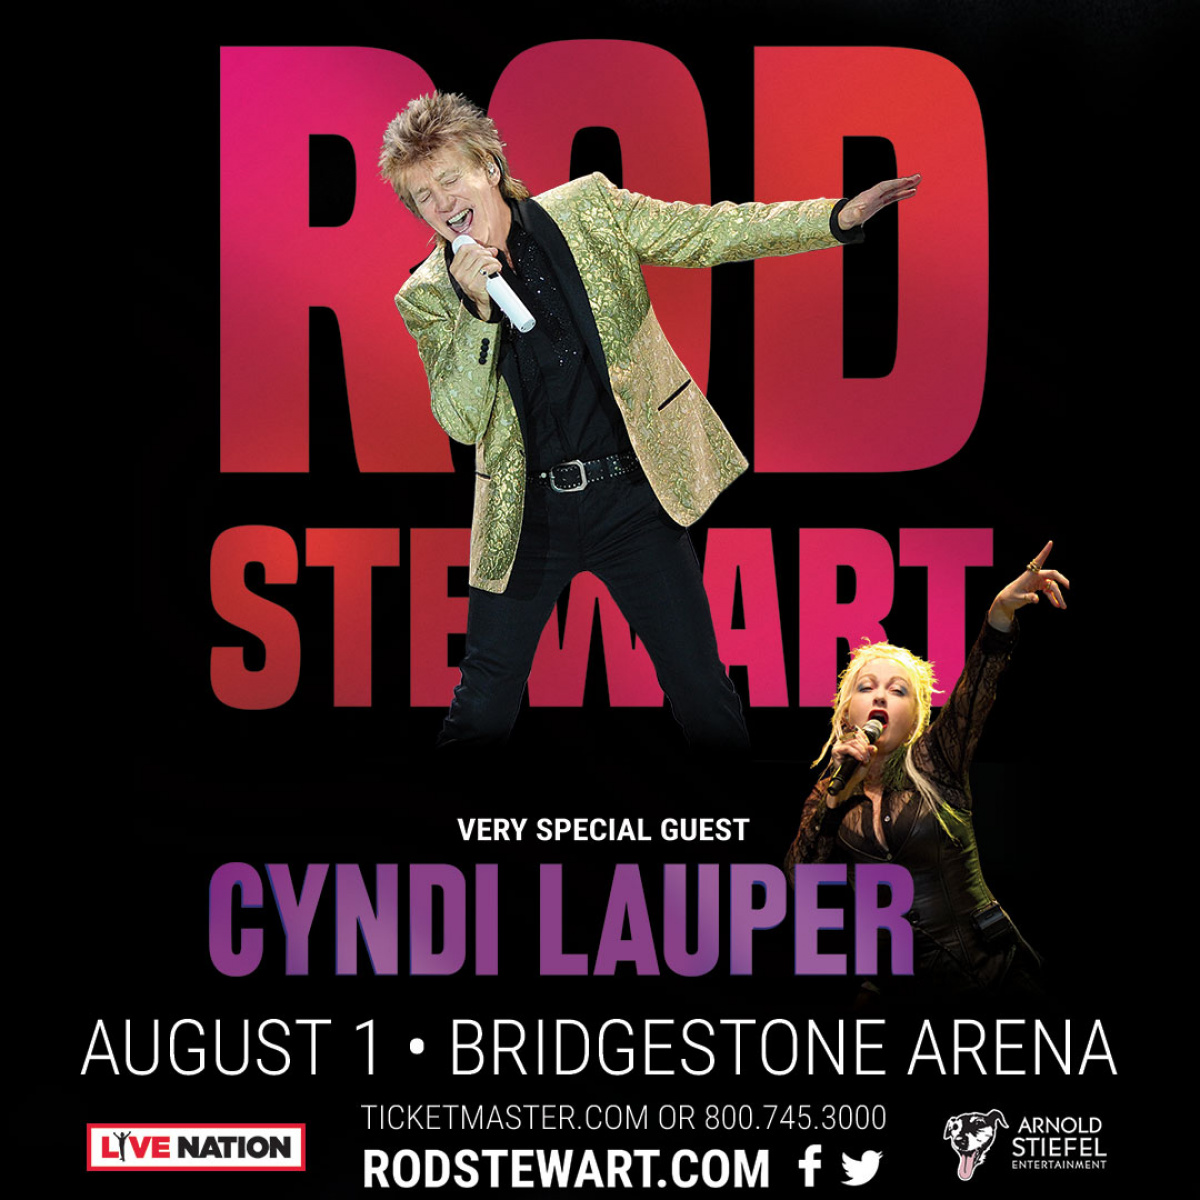 Rod Stewart with Cyndi Lauper